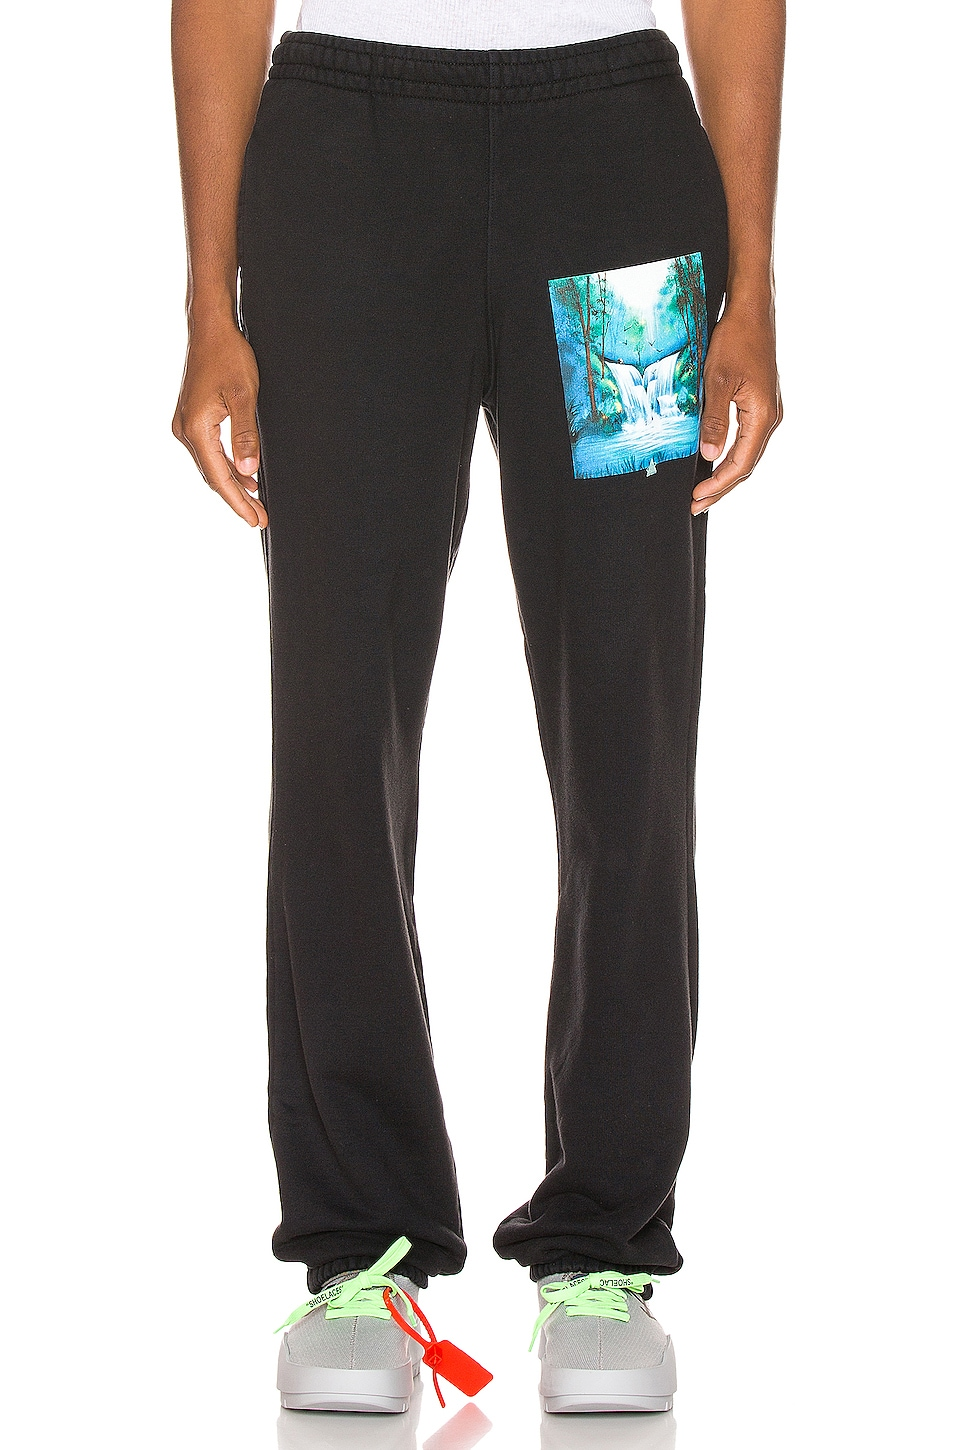 OFF-WHITE Waterfall Sweatpant in Black Multi